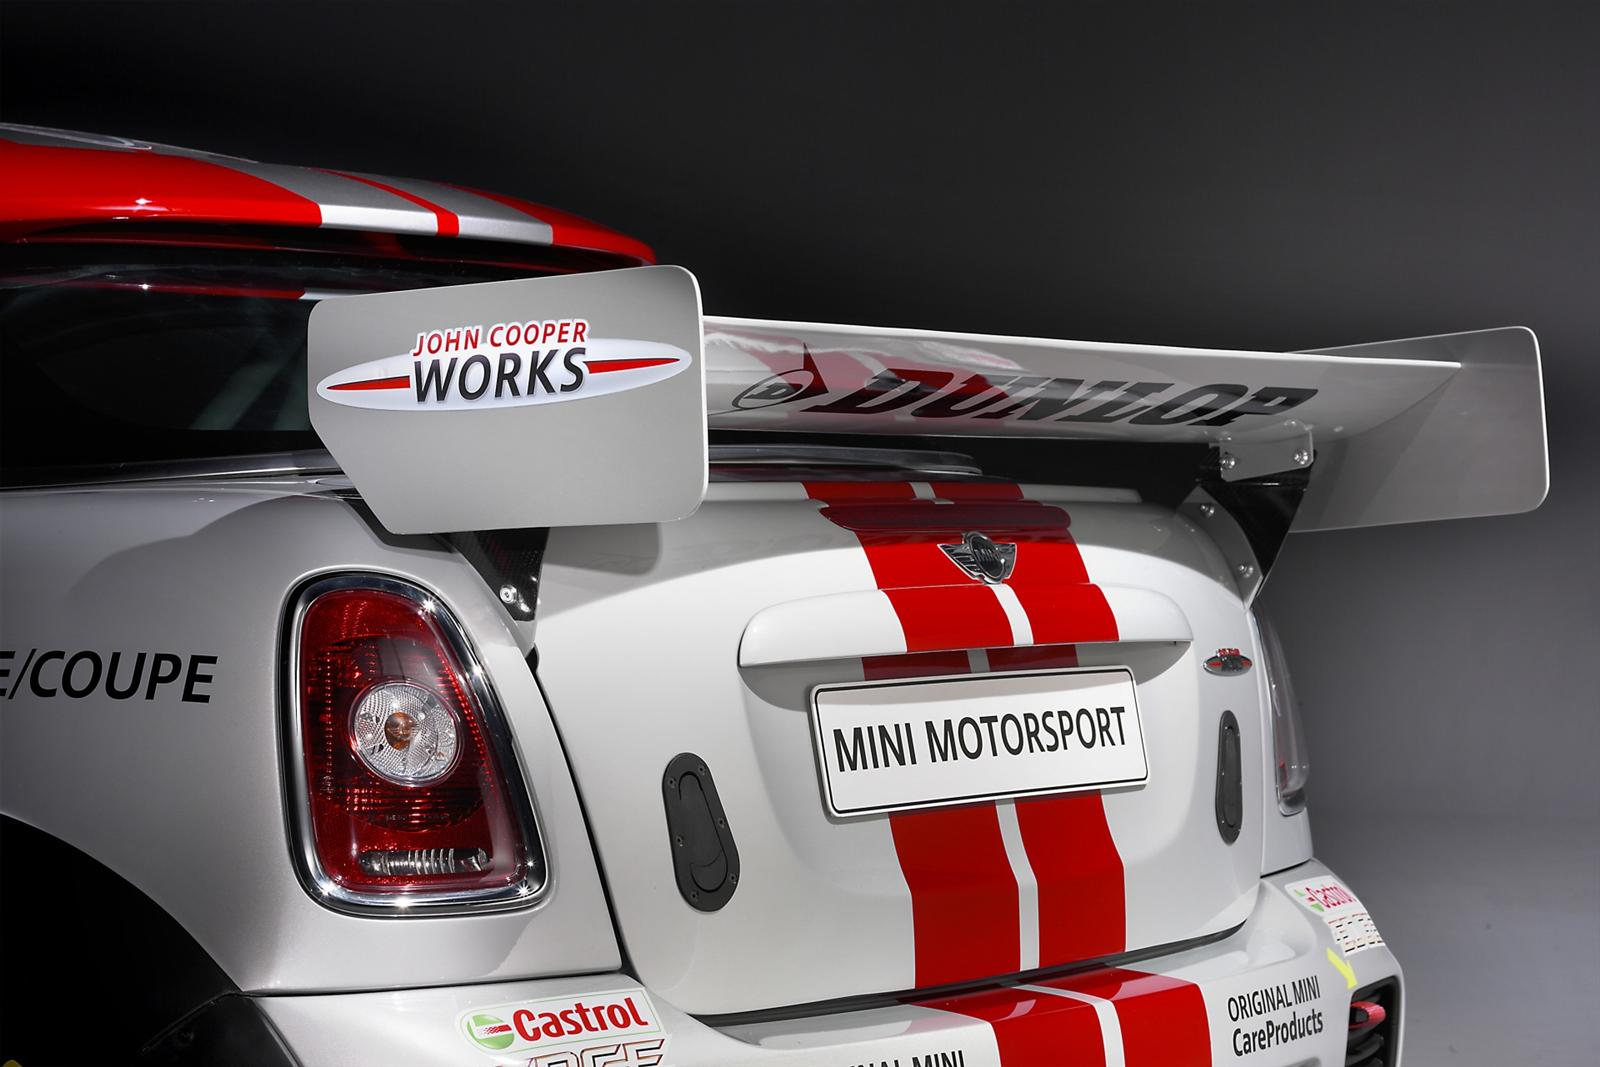 2011 MINI John Cooper Works Coupé Endurance